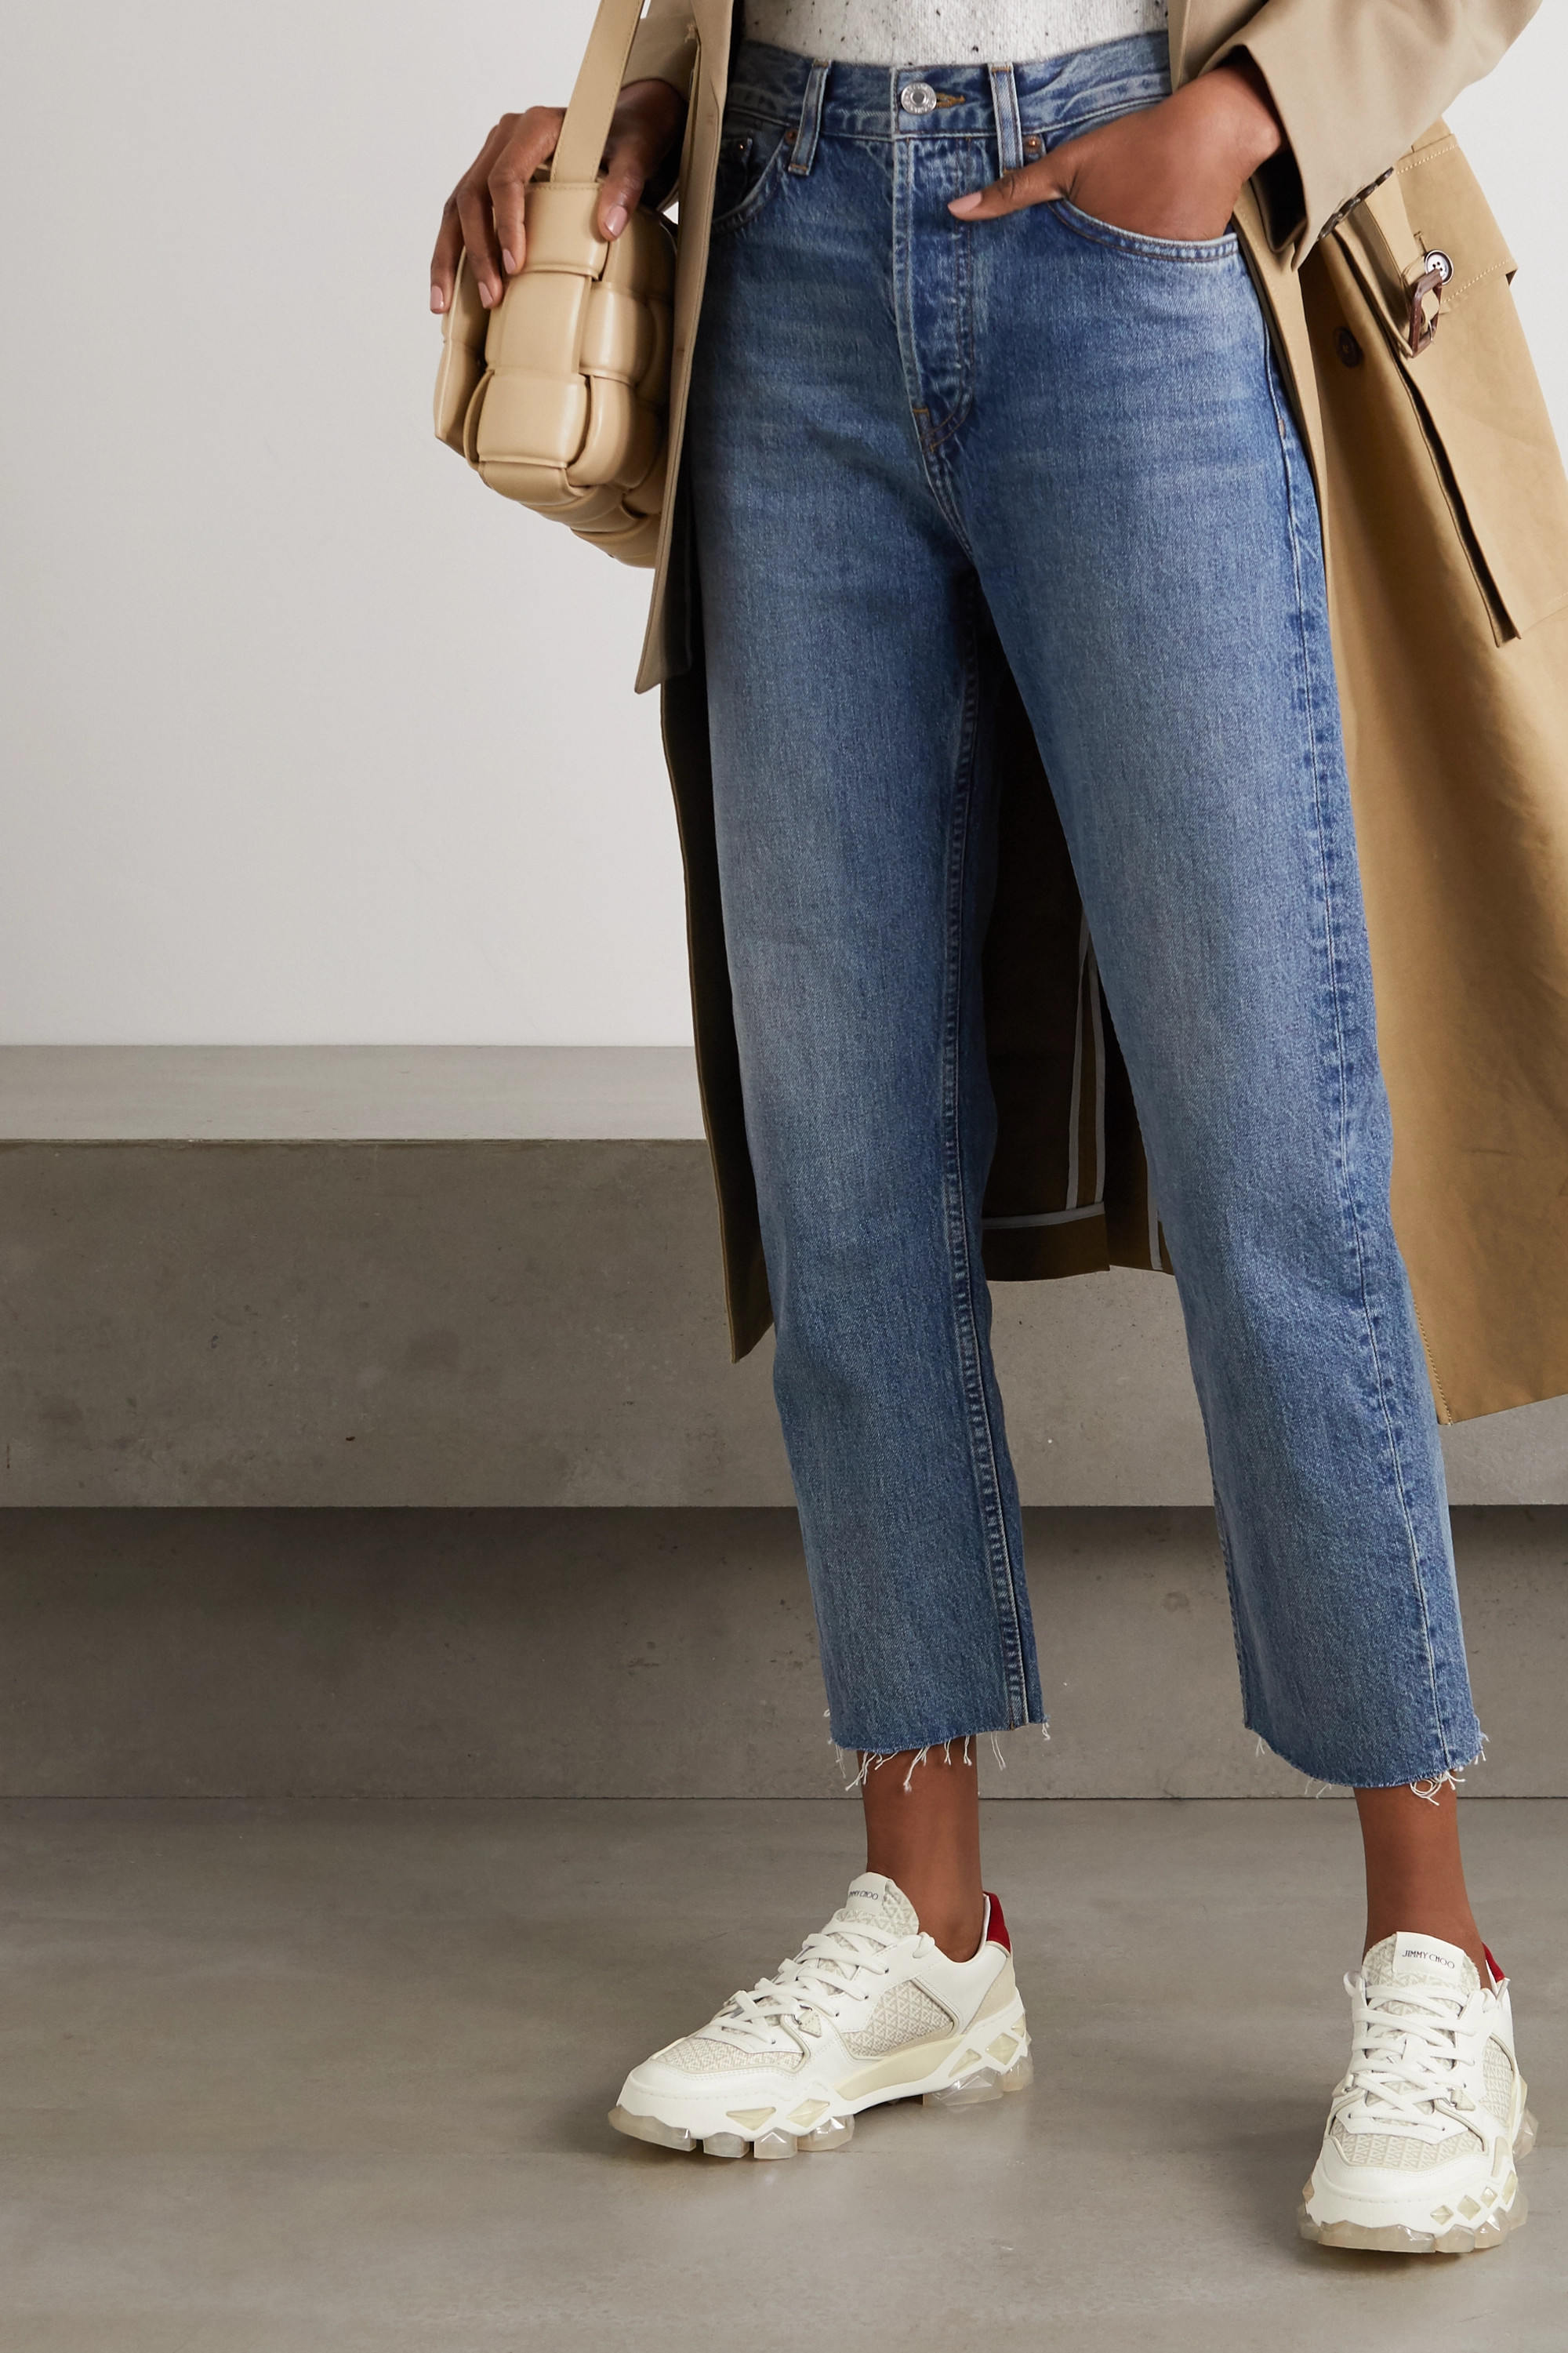 Jimmy Choo Diamond printed canvas, suede and leather sneakers